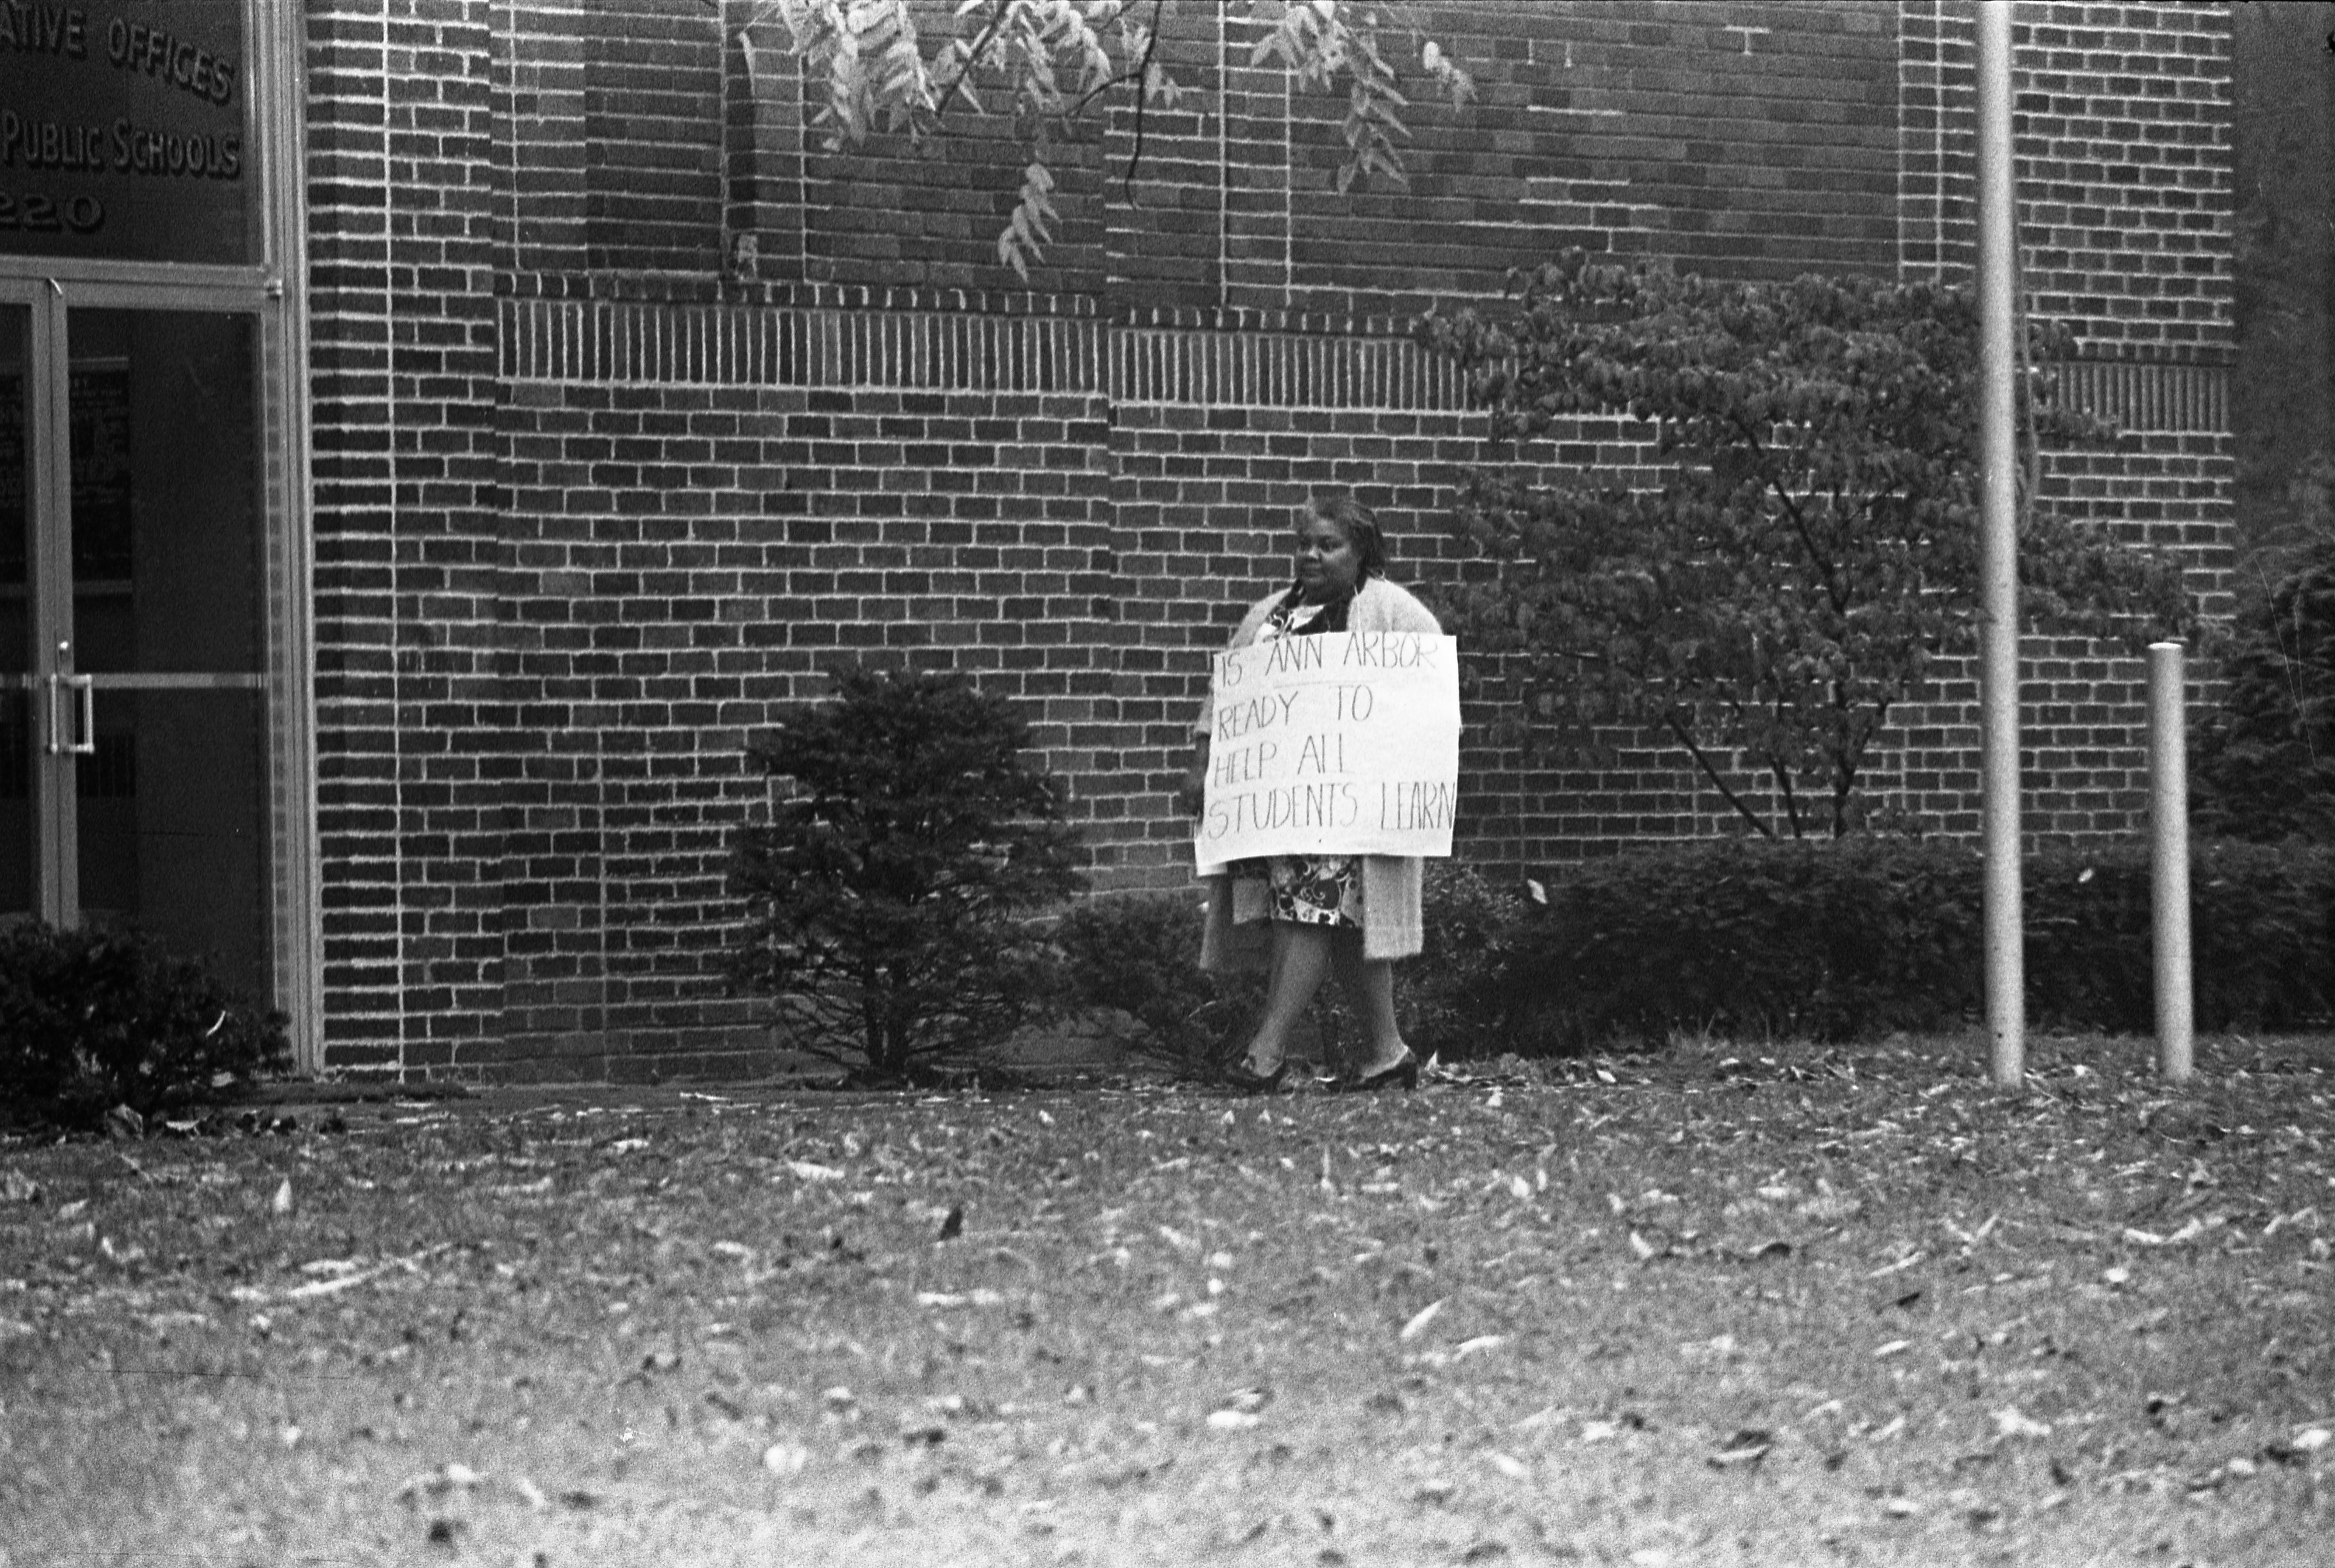 Black Parent Pickets Ann Arbor School Administrative Offices, October 13, 1970 image